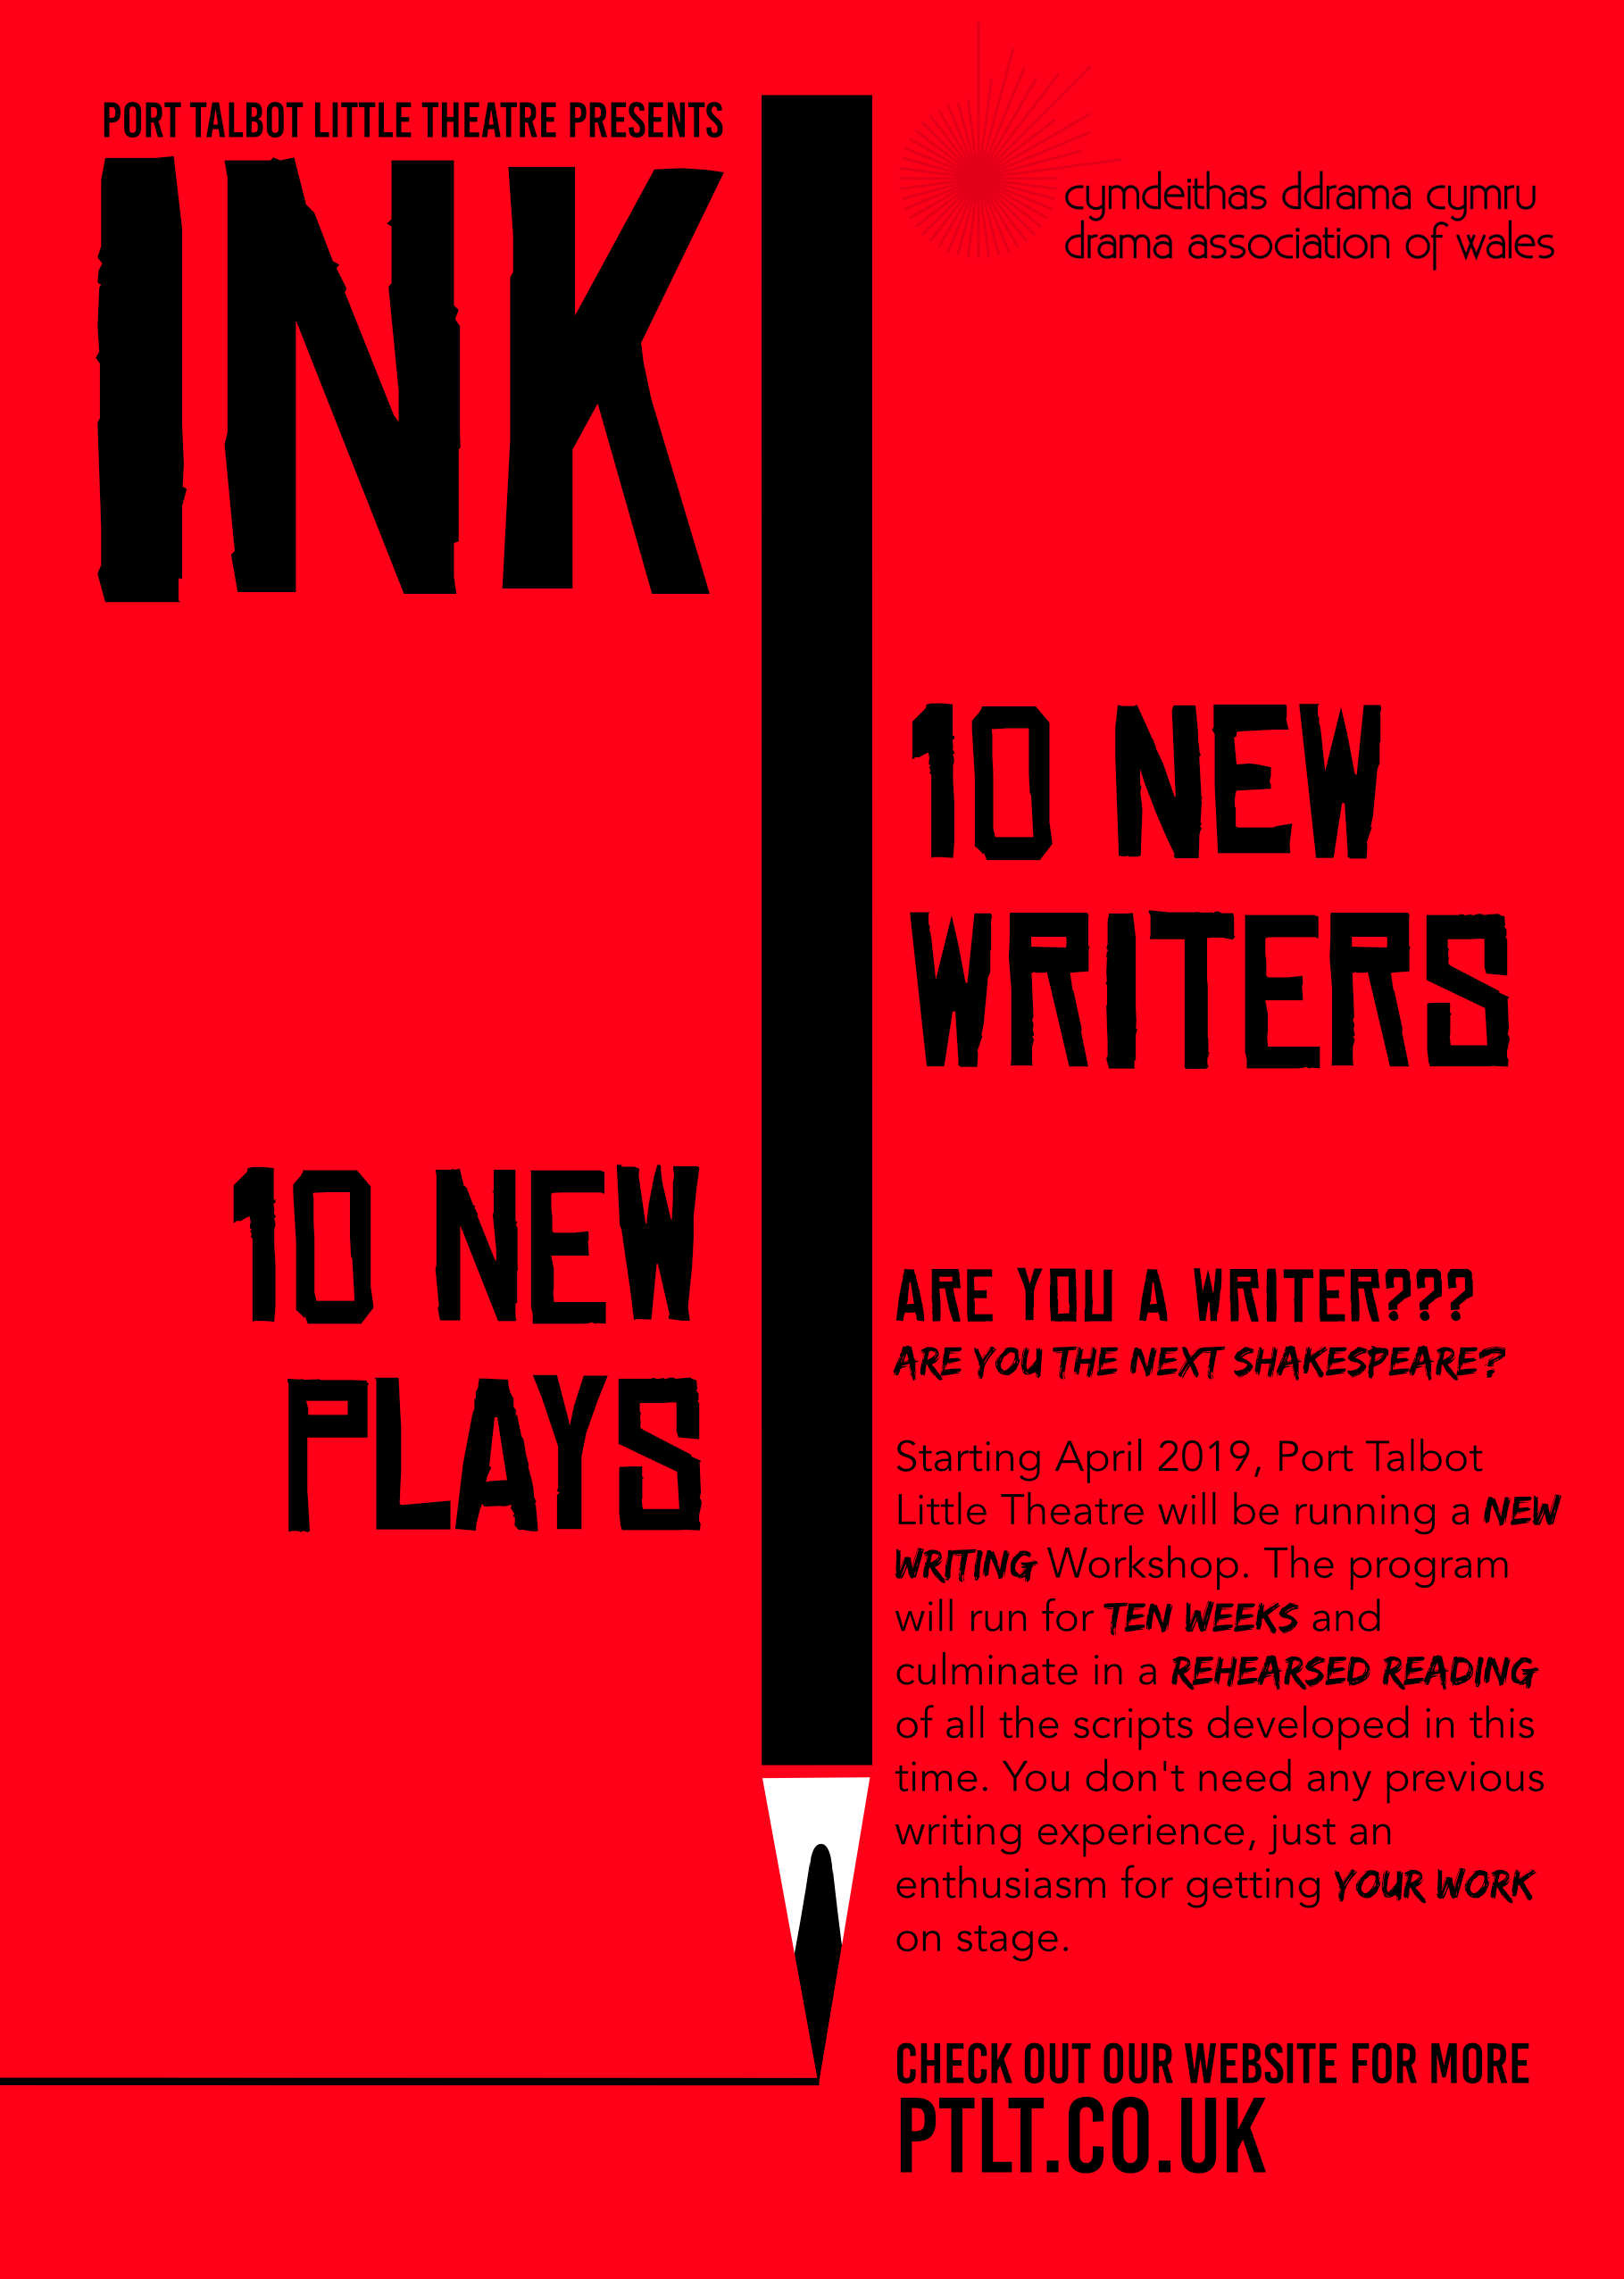 Port Talbot Little Theatre Presents INK